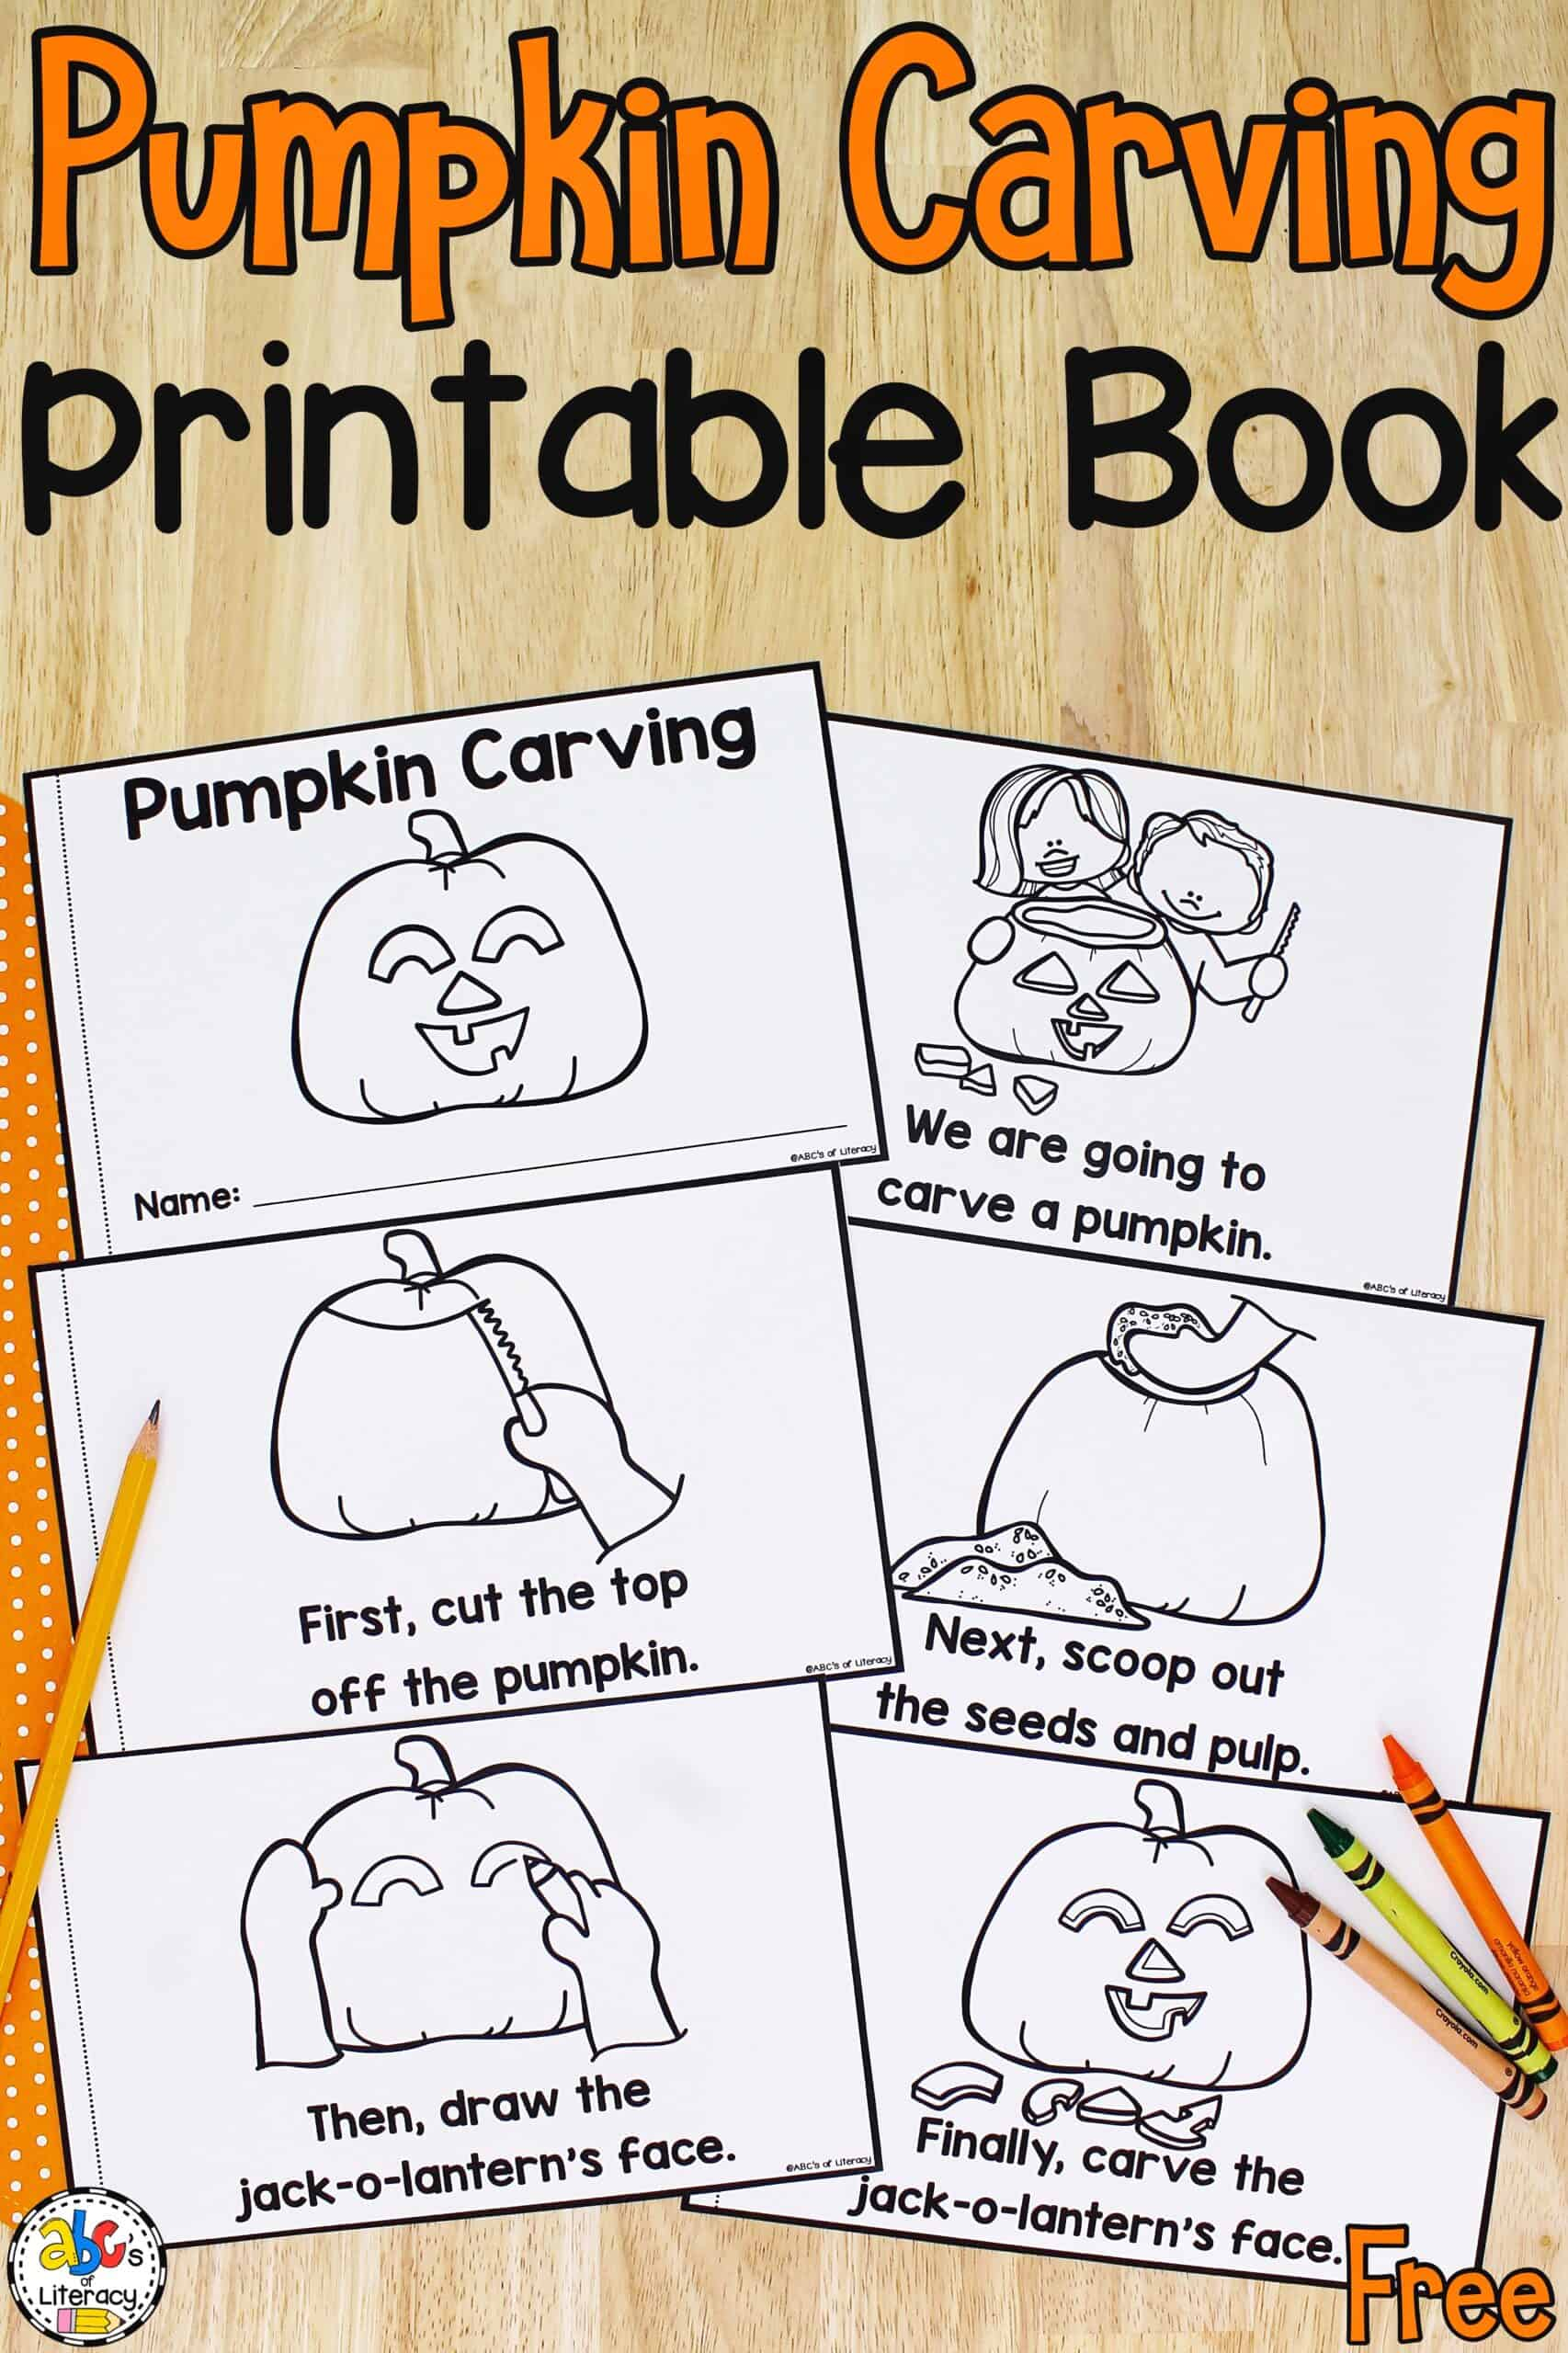 How To Carve A Pumpkin Book